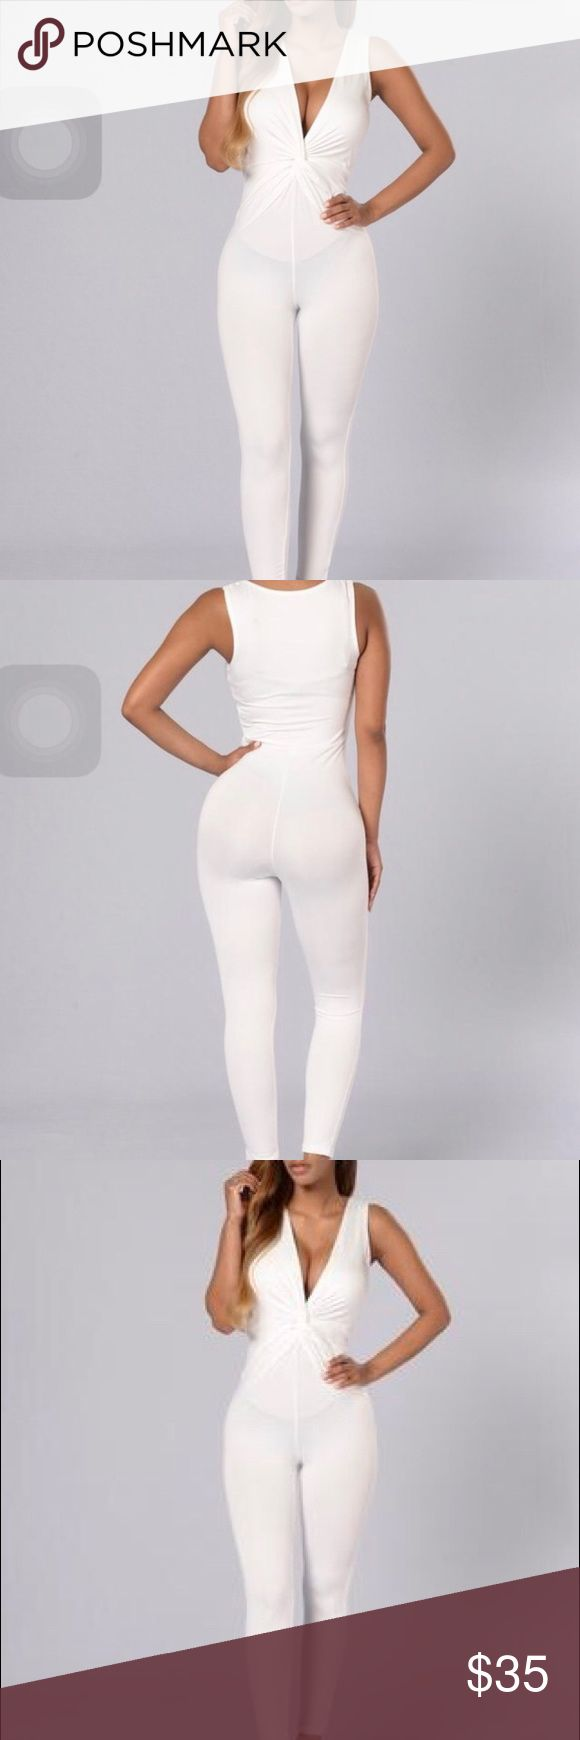 White jumpsuit (fashion nova) I got this jumpsuit for an all white party but I didn't end up wearing. Brand new with tags. Fashion Nova Pants Jumpsuits & Rompers